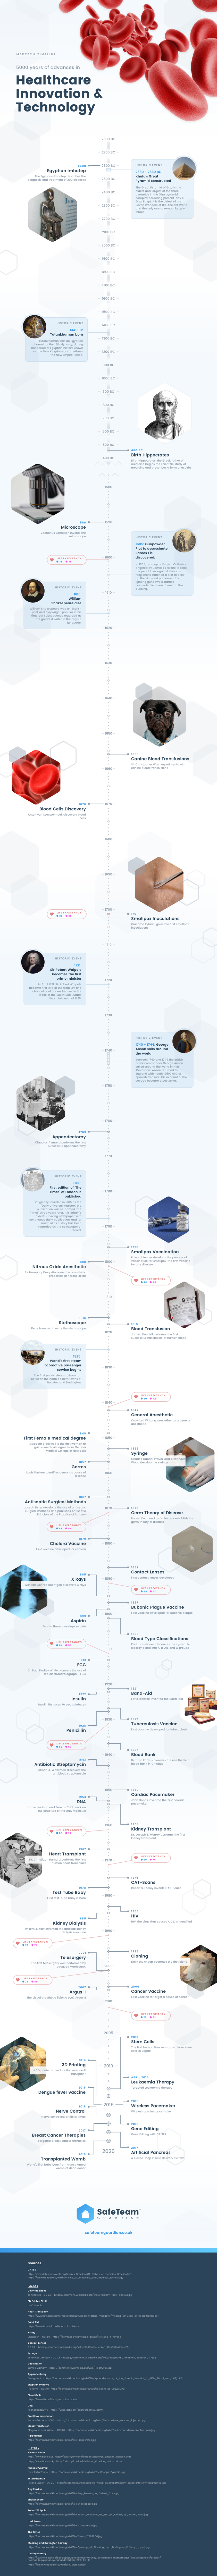 Medtech Timeline – 5000 Years of Advances in Healthcare